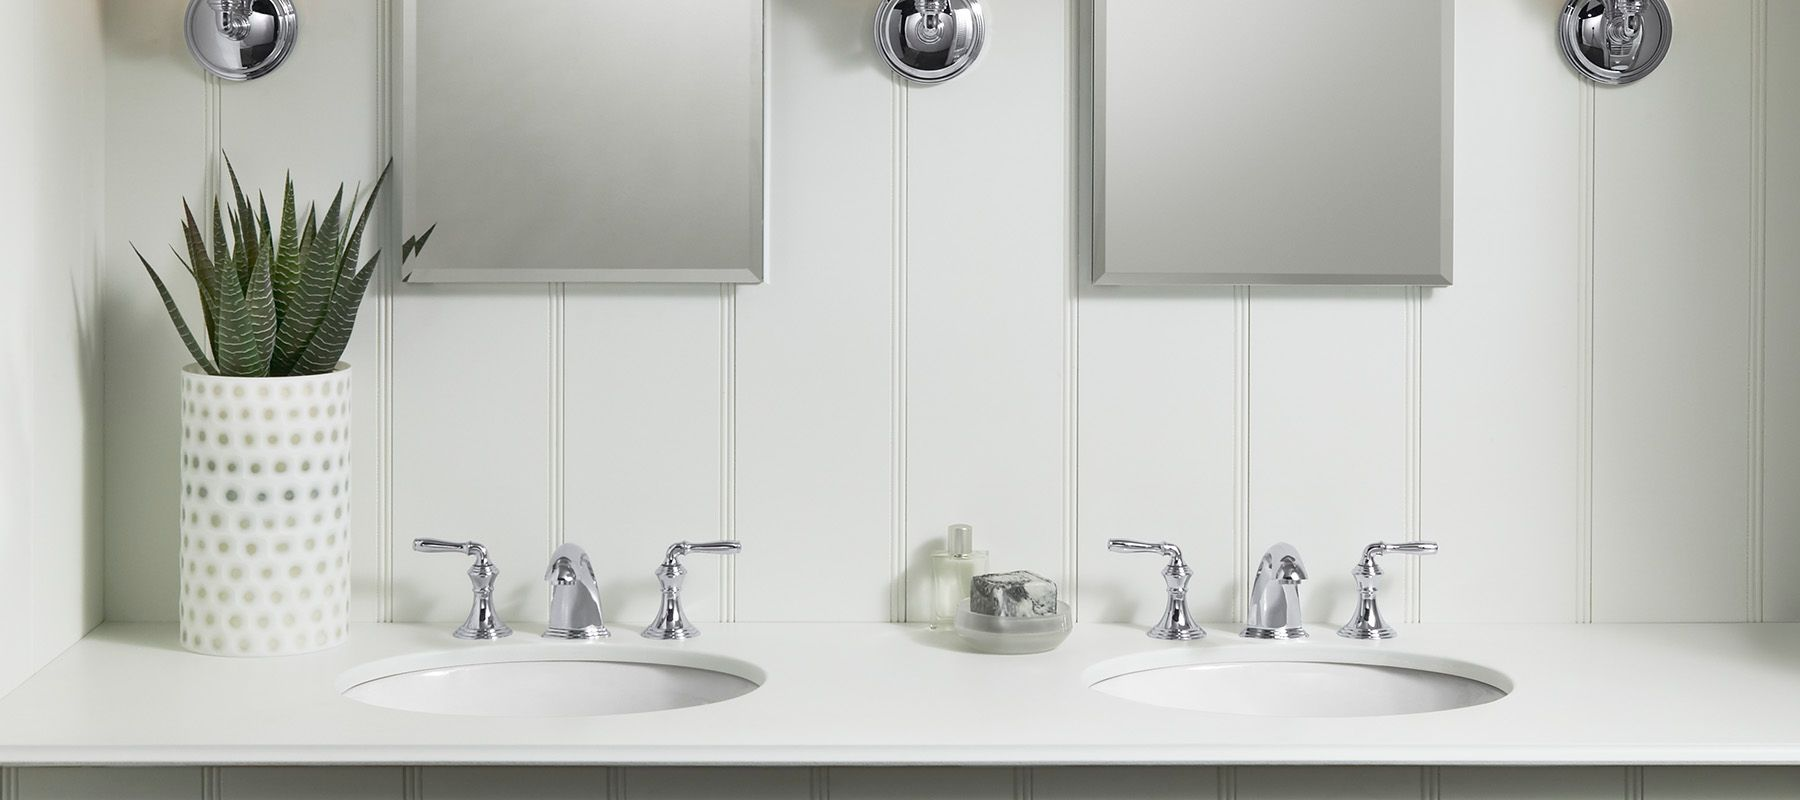 bathroom sinks buying guide - Bathroom Accessories Kohler